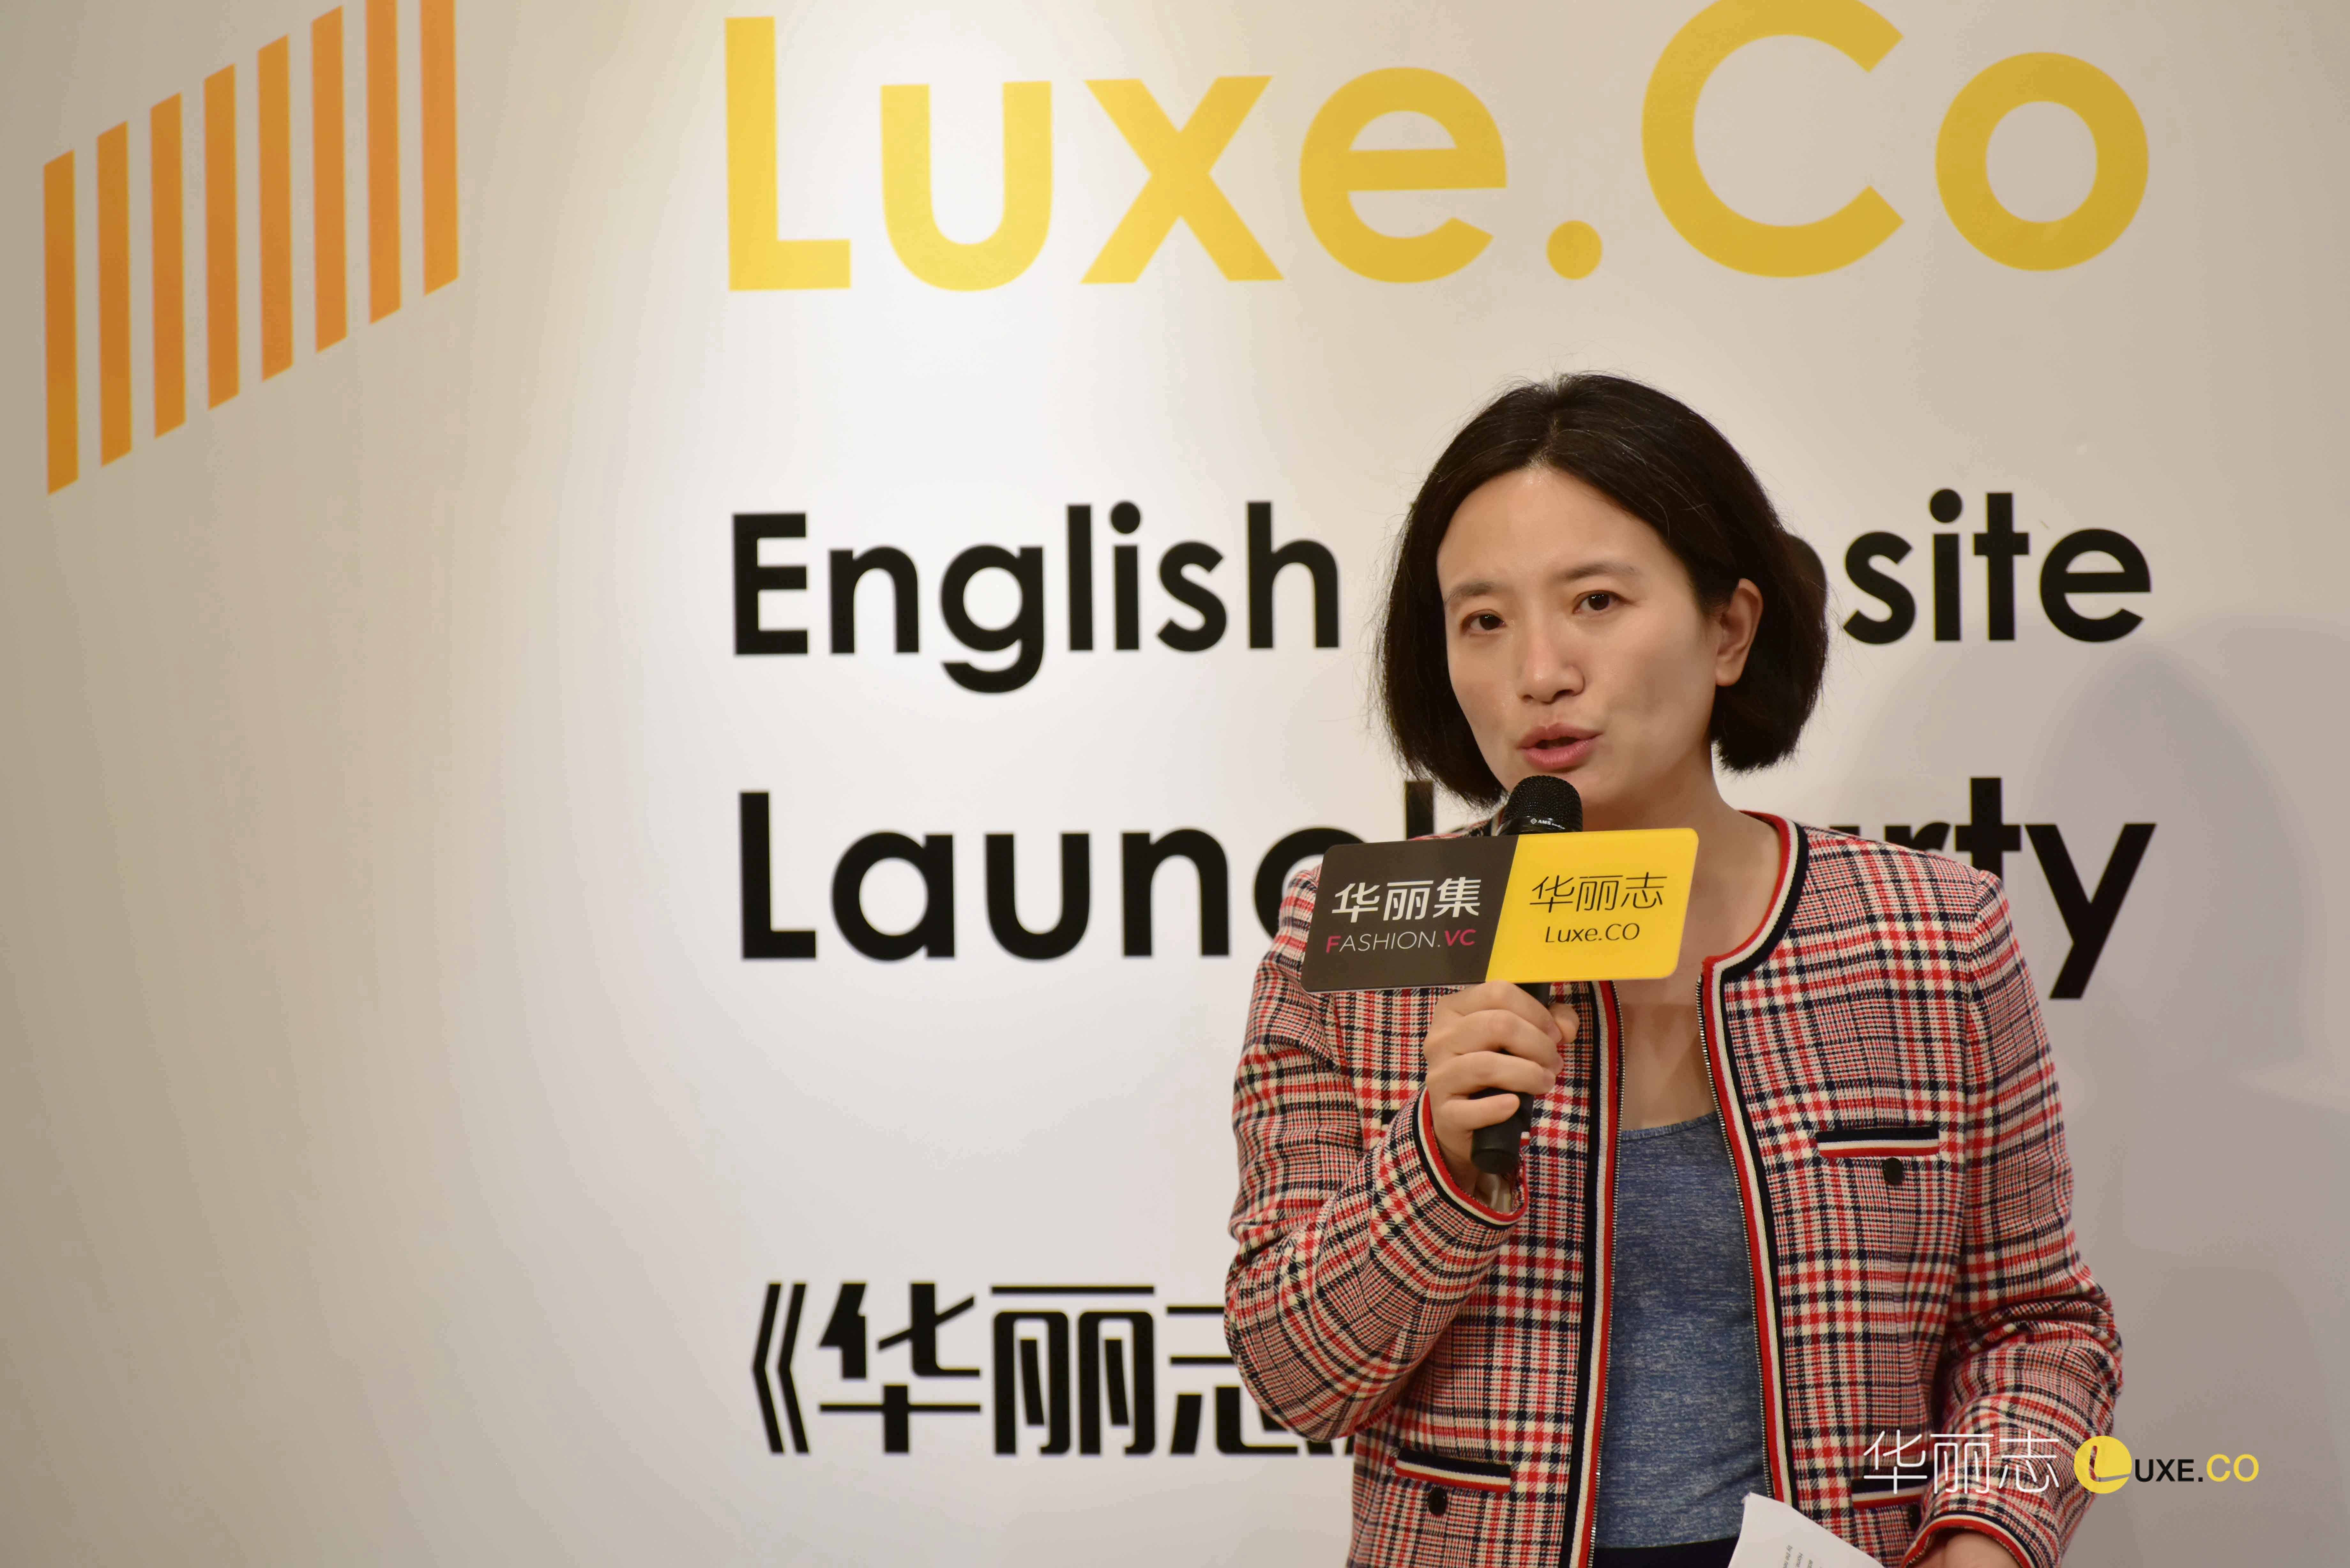 Connect Fashion Power of China with the World 华丽志英文版发布酒会图文播报